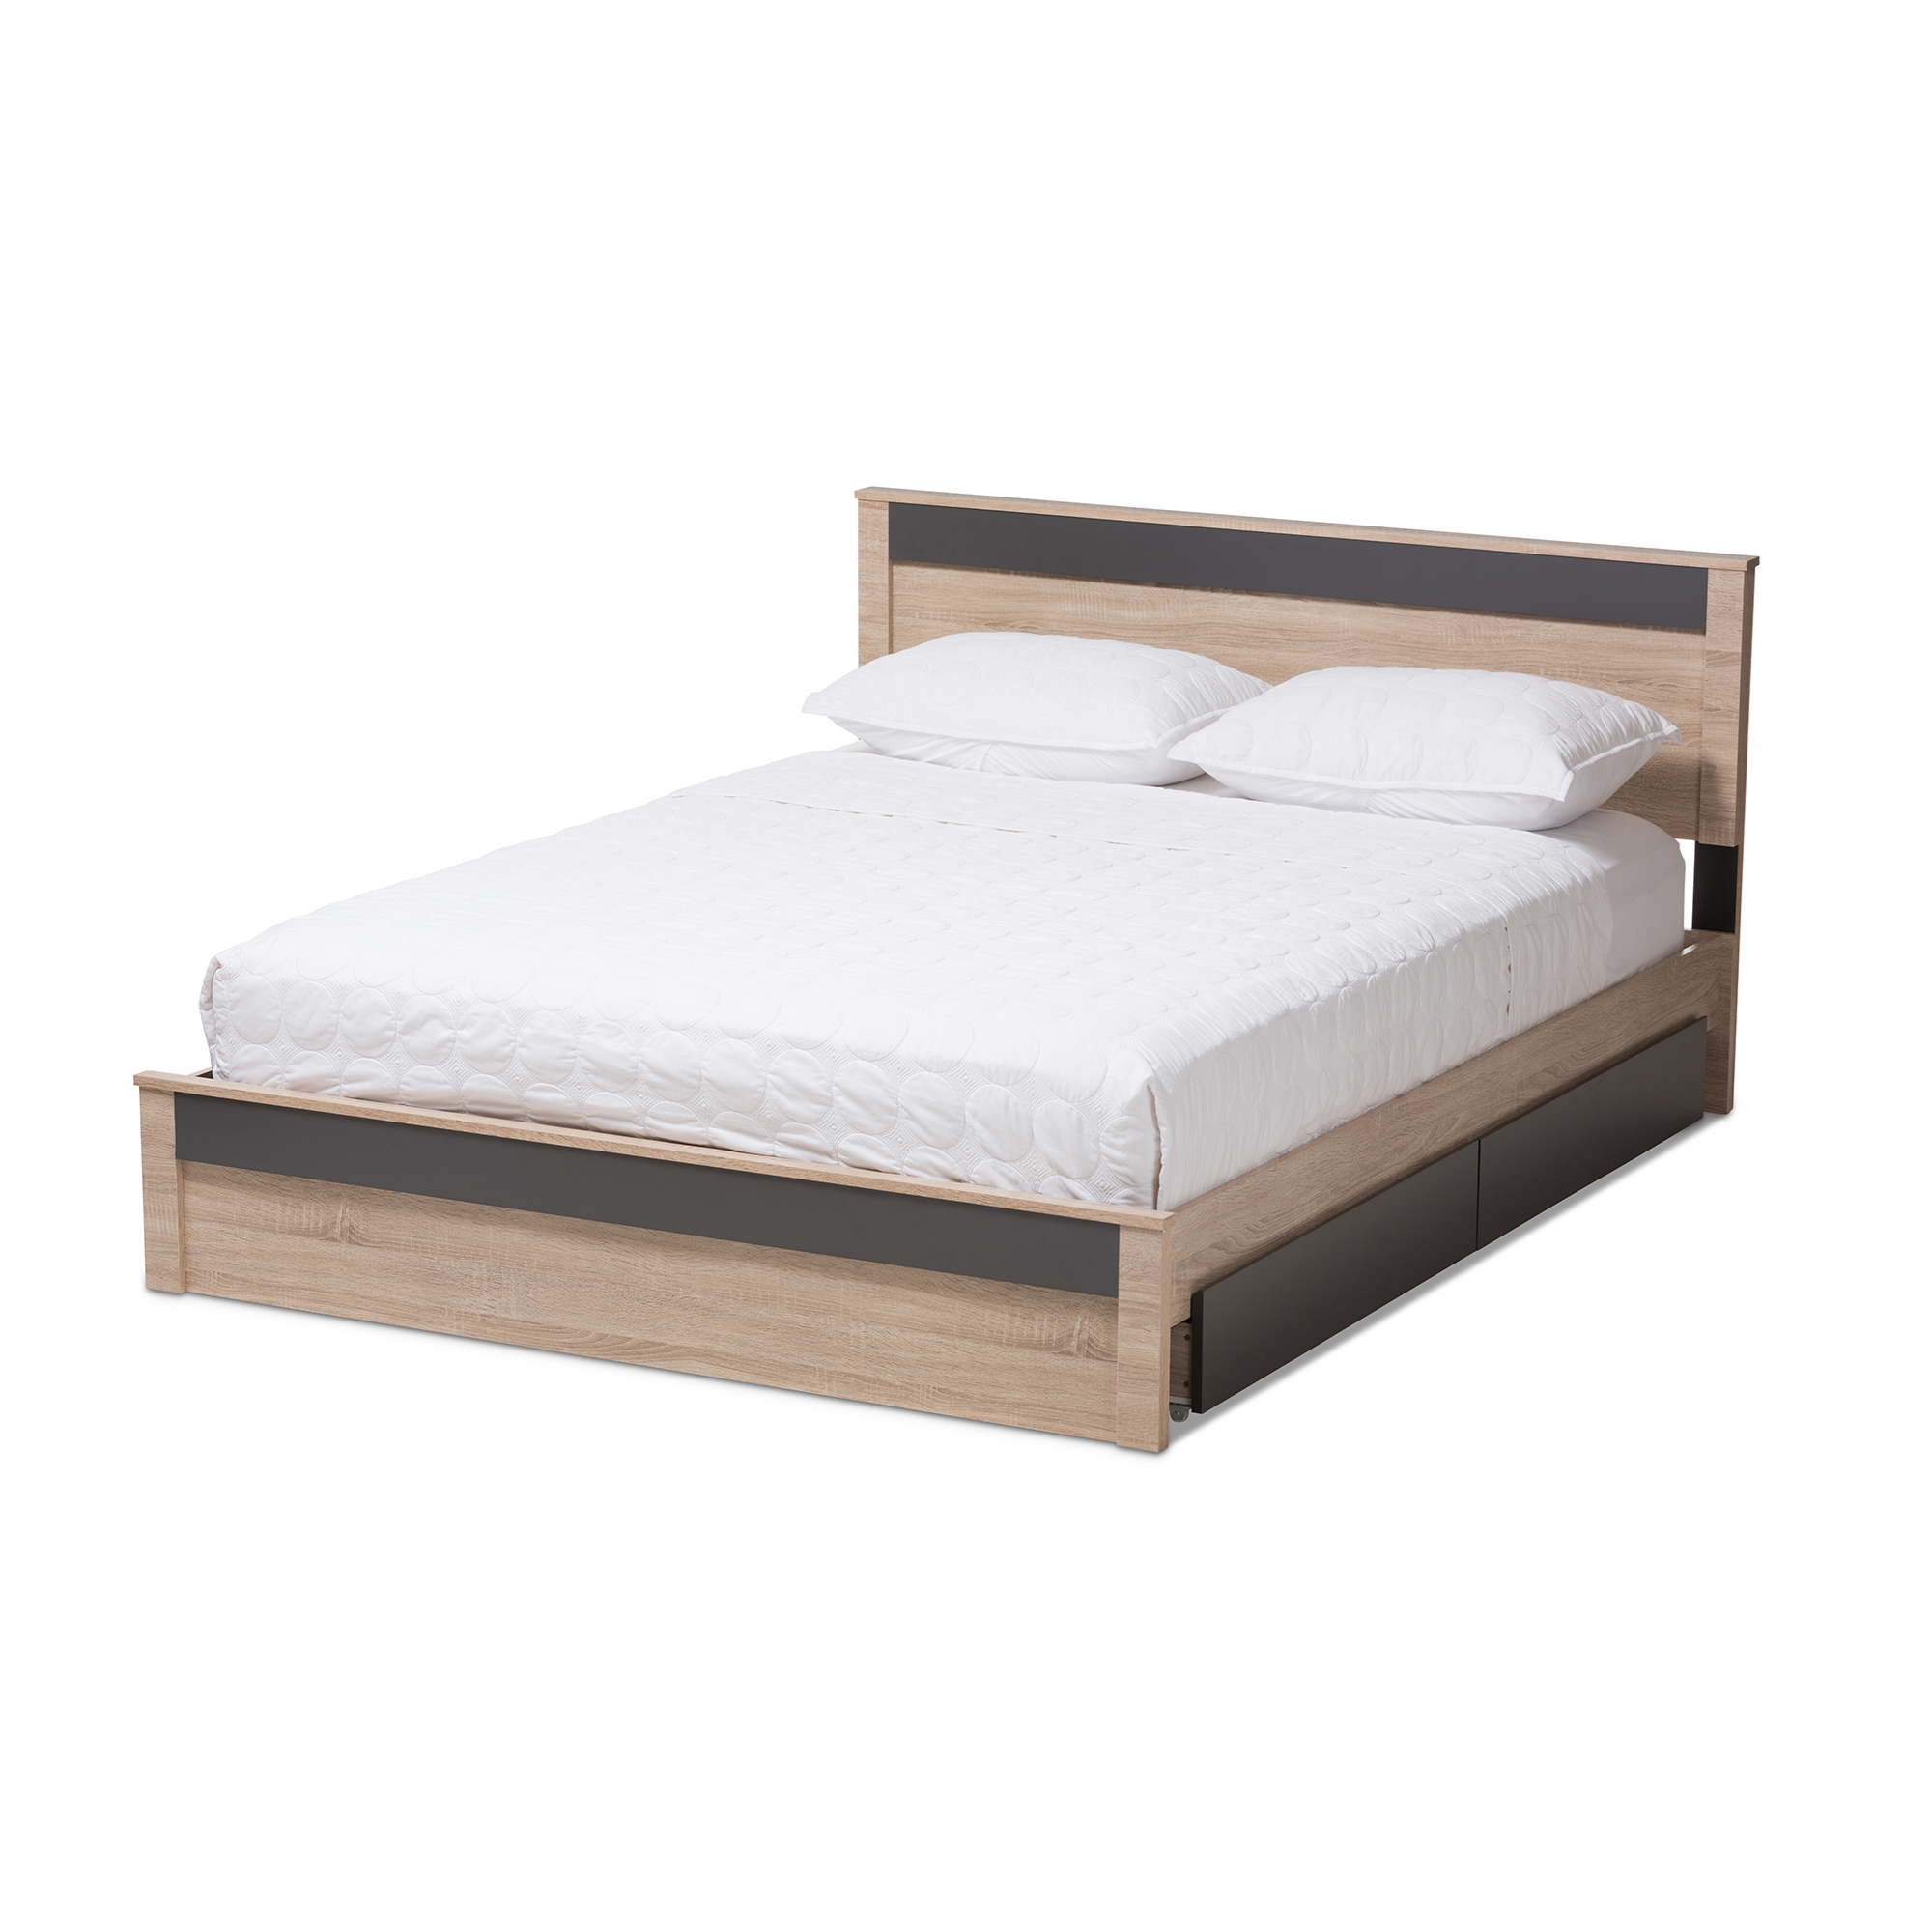 Cheap modern bed frames full size of affordable high end for Cheap platform bed frame queen